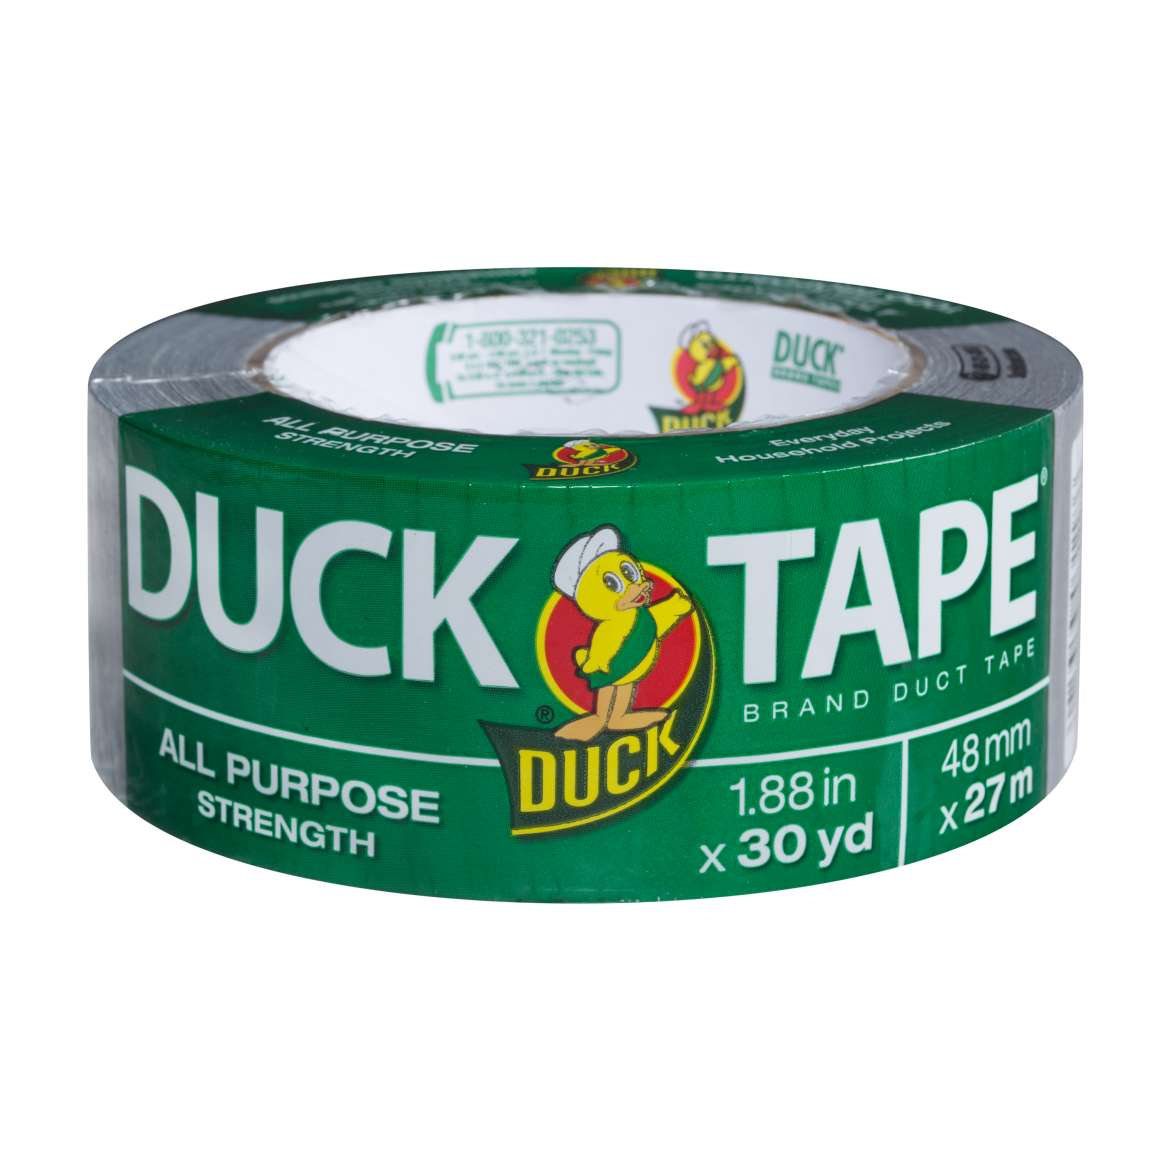 All Purpose Duck Tape® Brand Duct Tape - Silver, 1.88 in. x 30 yd. Image